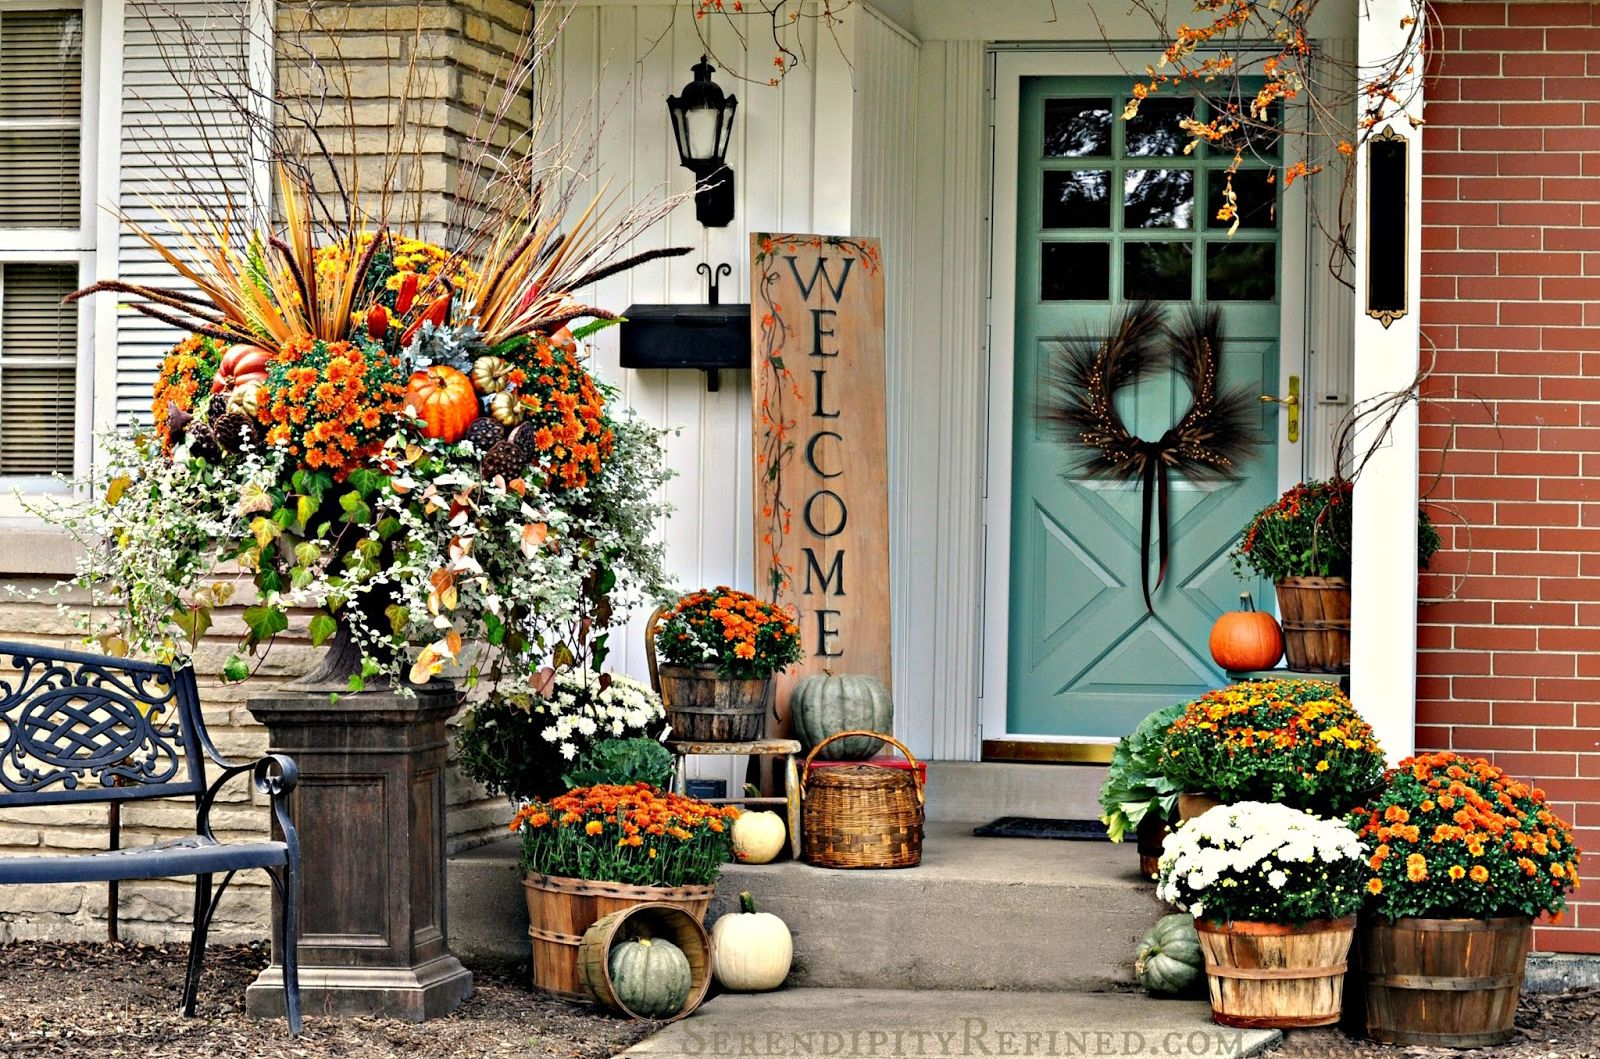 67 Best Fall Porch Decorating Ideas Featuring All The Colors Of The Season Fall Decorations Porch Fall Outdoor Decor Front Porch Decorating